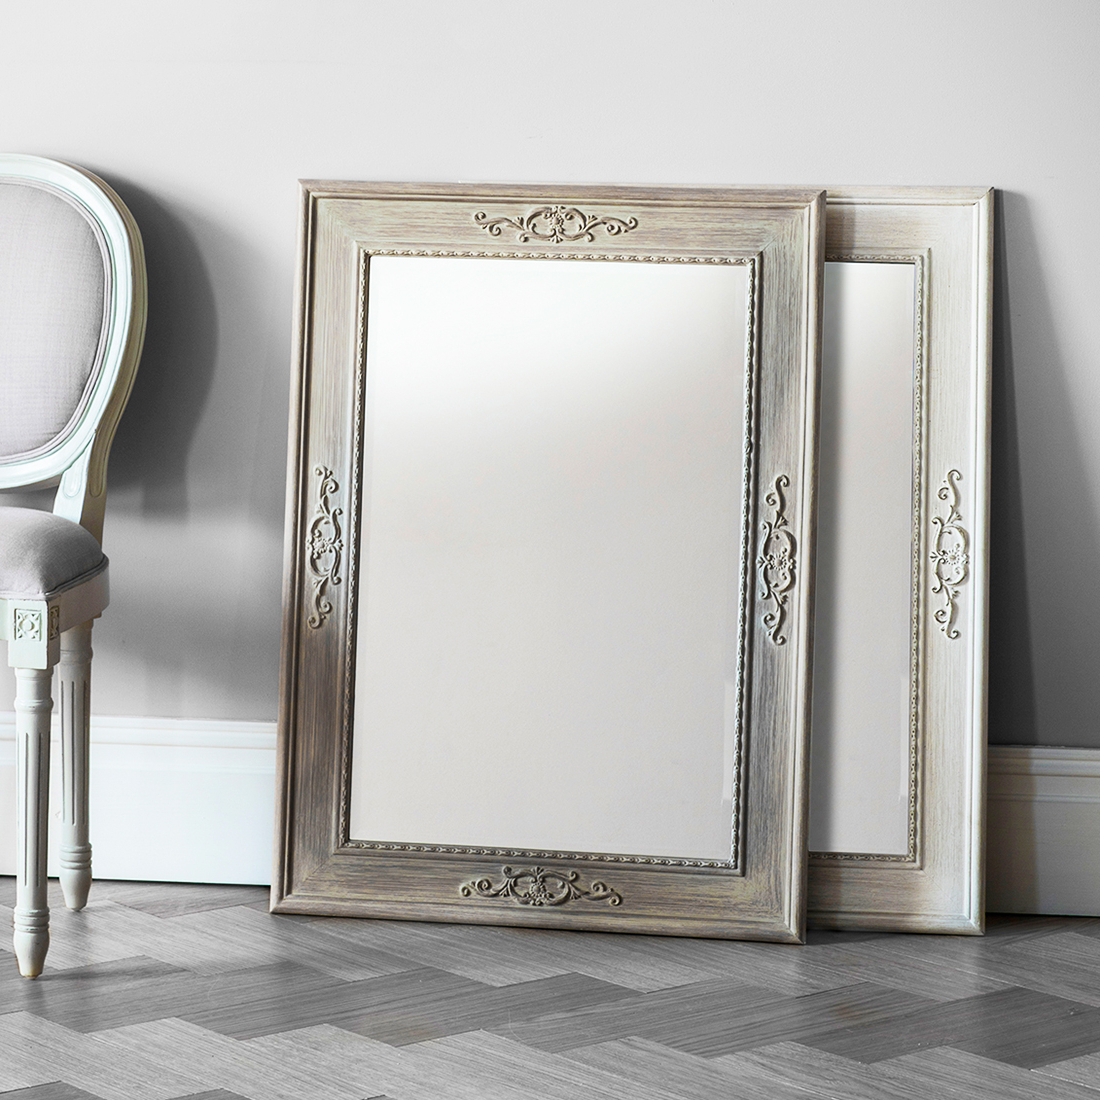 Distressed Wood Wall Mirrors Regarding Preferred Decorative Rectangular Wooden Wall Mirrors – White Or Limed Oak (View 13 of 20)